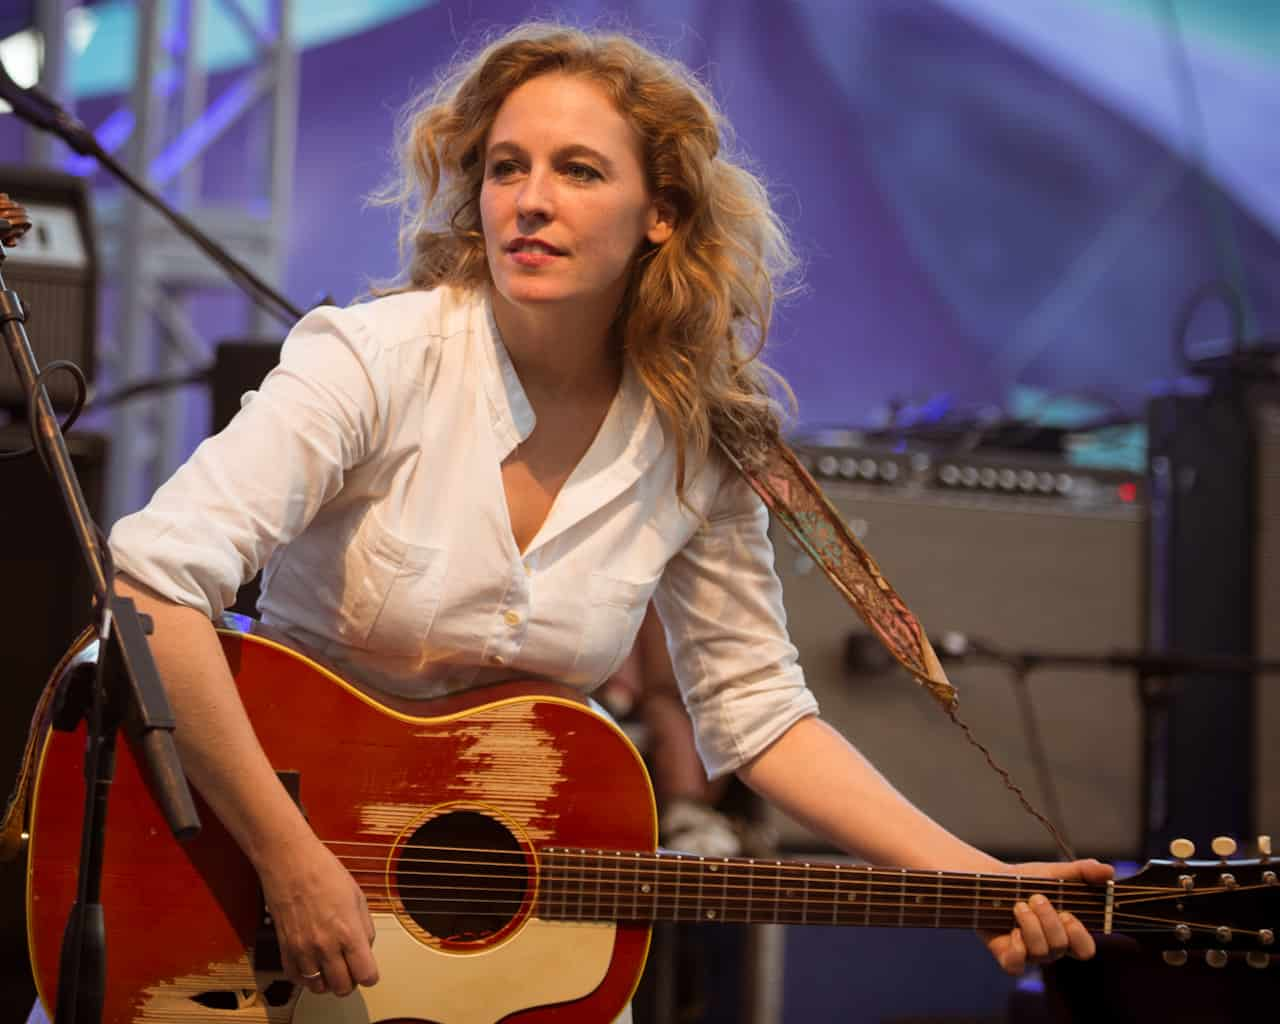 Tift Merritt- Travelling alone-2 live versions.